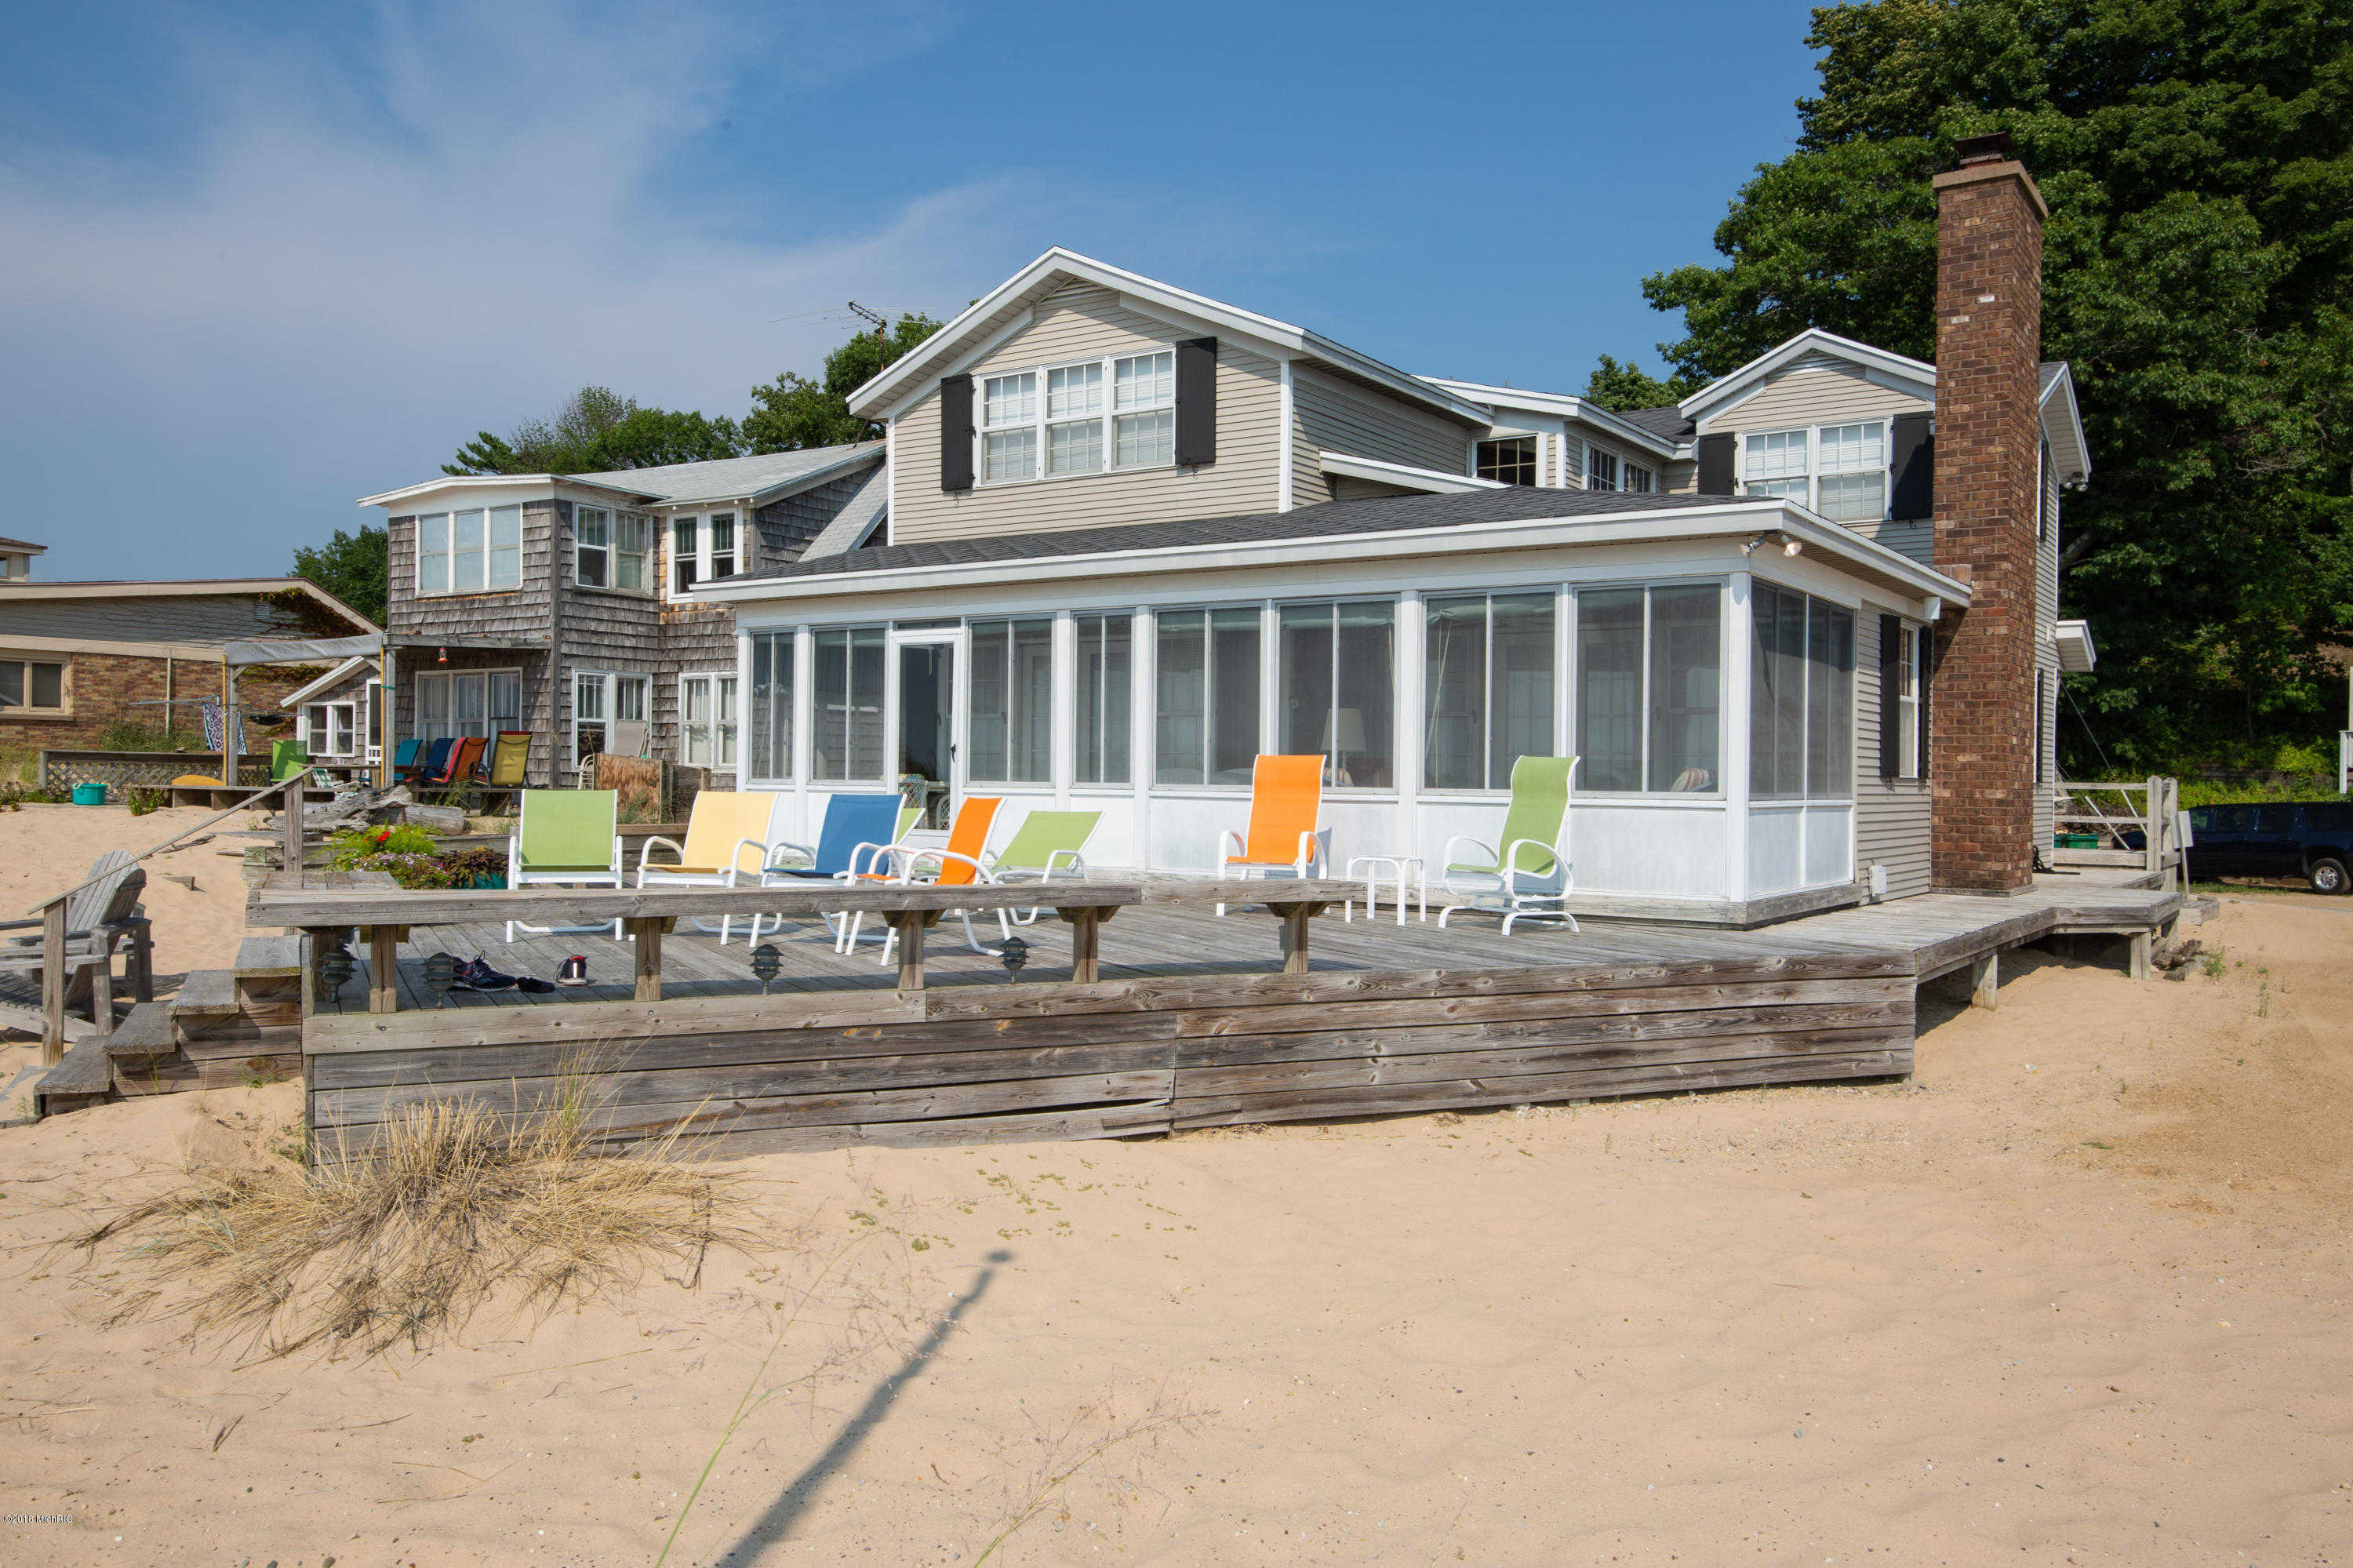 Homes for Sale in West Olive - Michigan Vacation Property